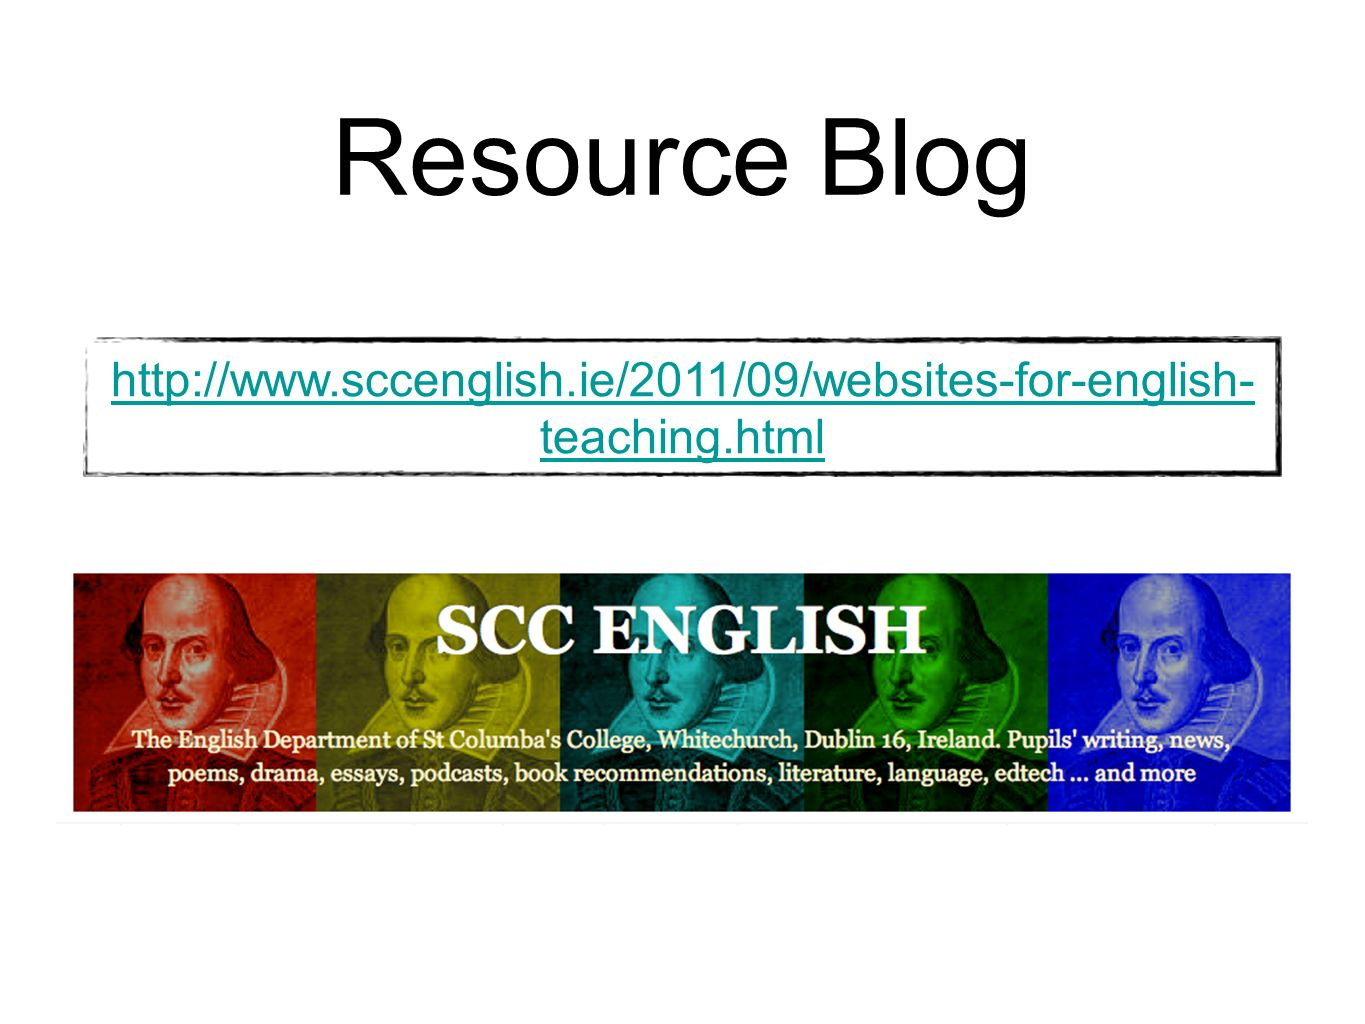 Resource Blog http://www.sccenglish.ie/2011/09/websites-for-english-teaching.html